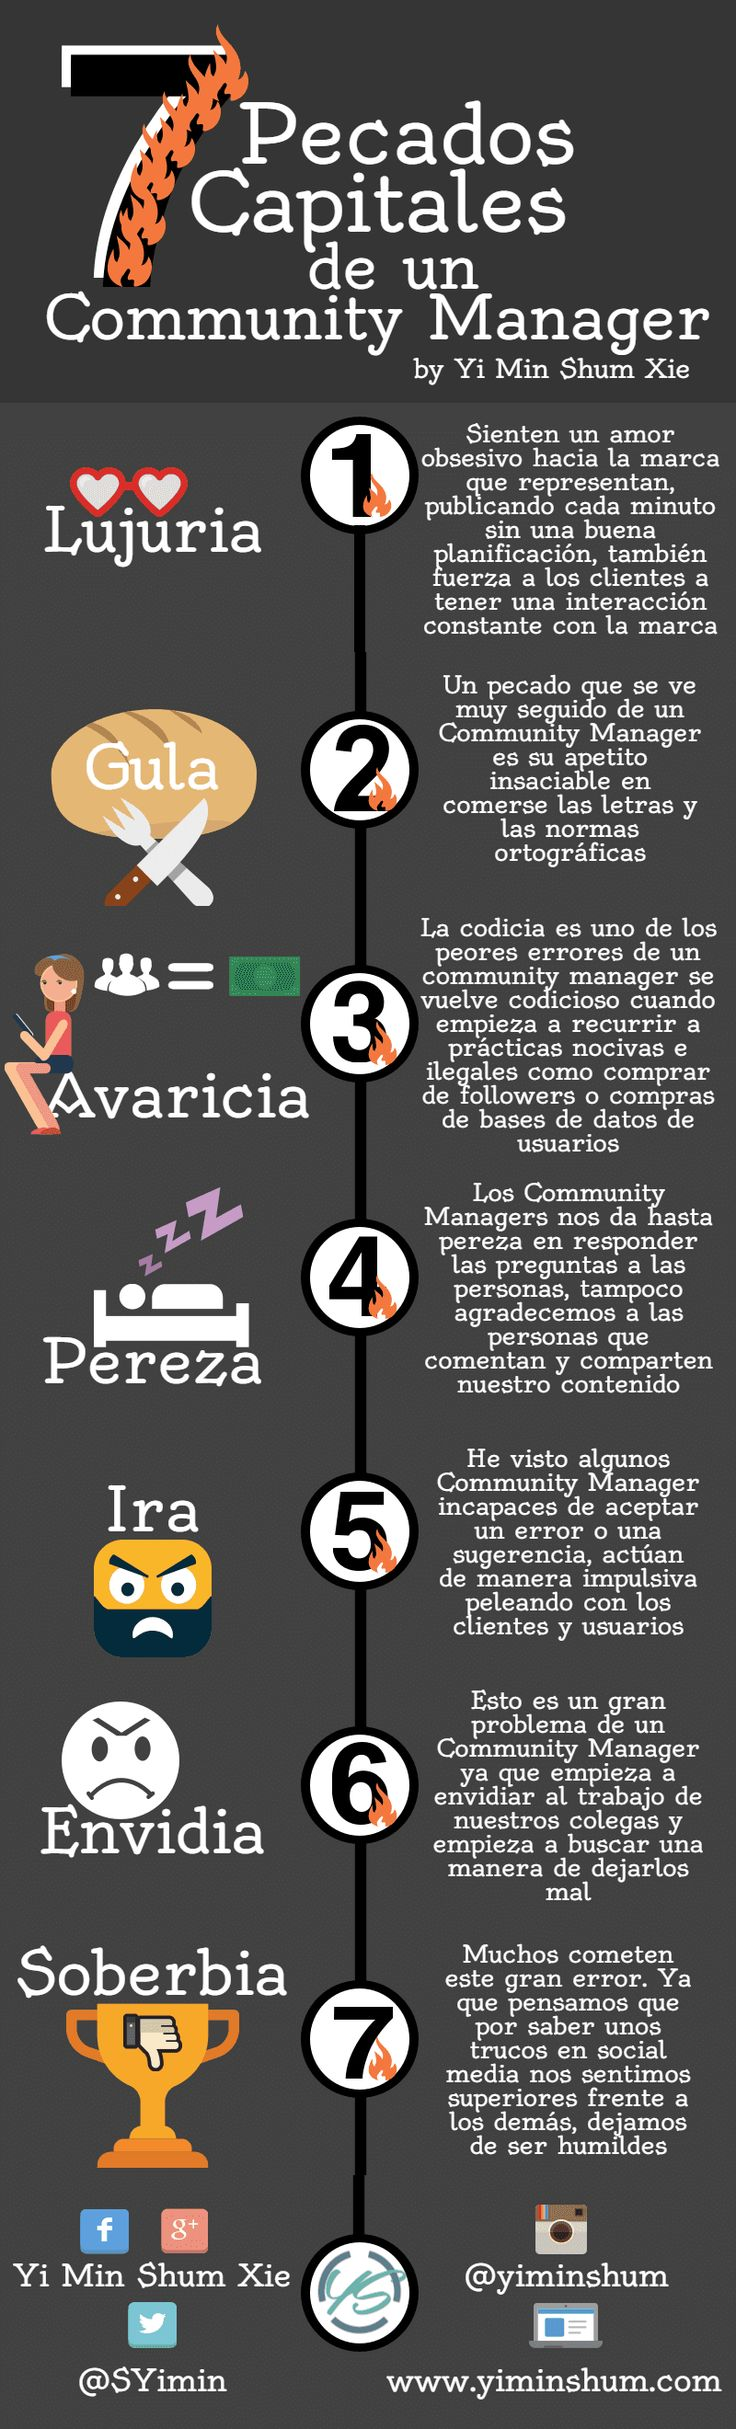 7 pecados capitales community managers